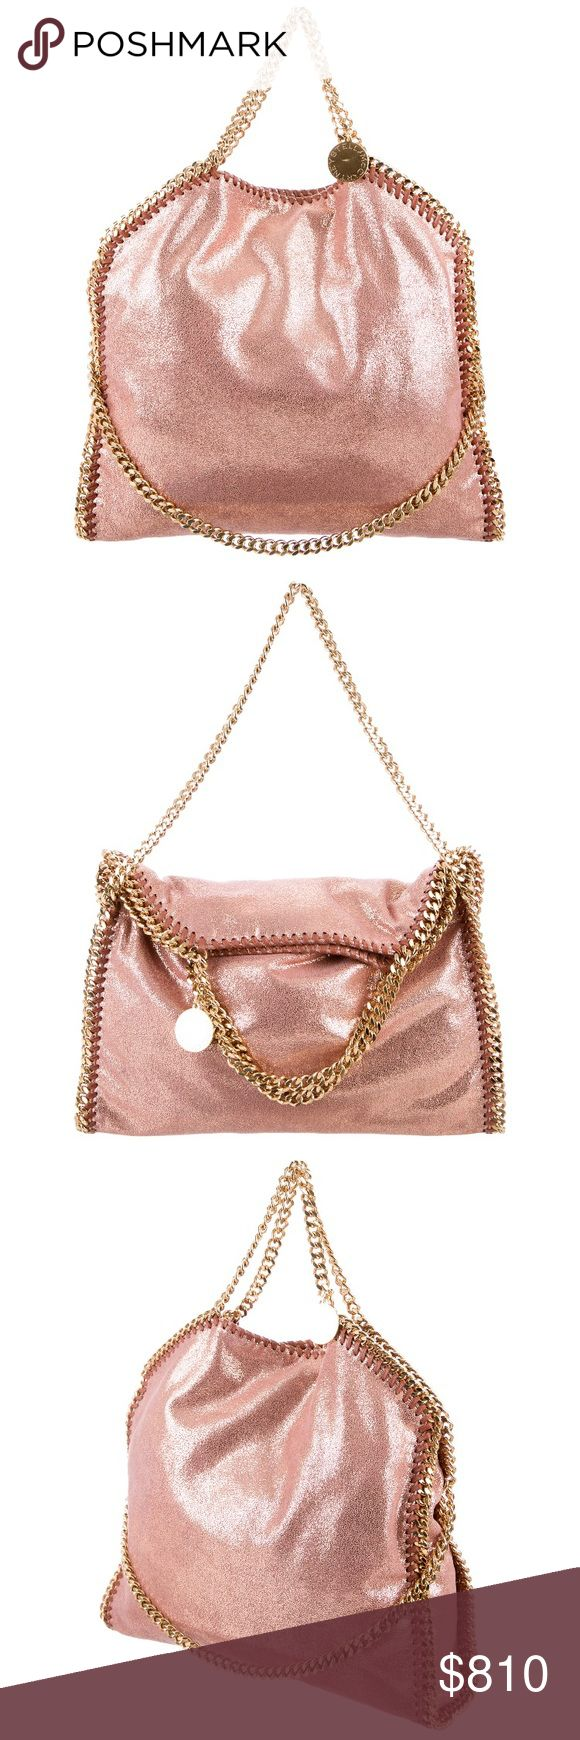 "Stella McCartney Falabella tote Comes with the dust bag, shoulder strap 5.5"", height 15"", handle drop 5"", depth 4"", width 14"". Minor signs of wear. Copper pink color Stella McCartney Bags"